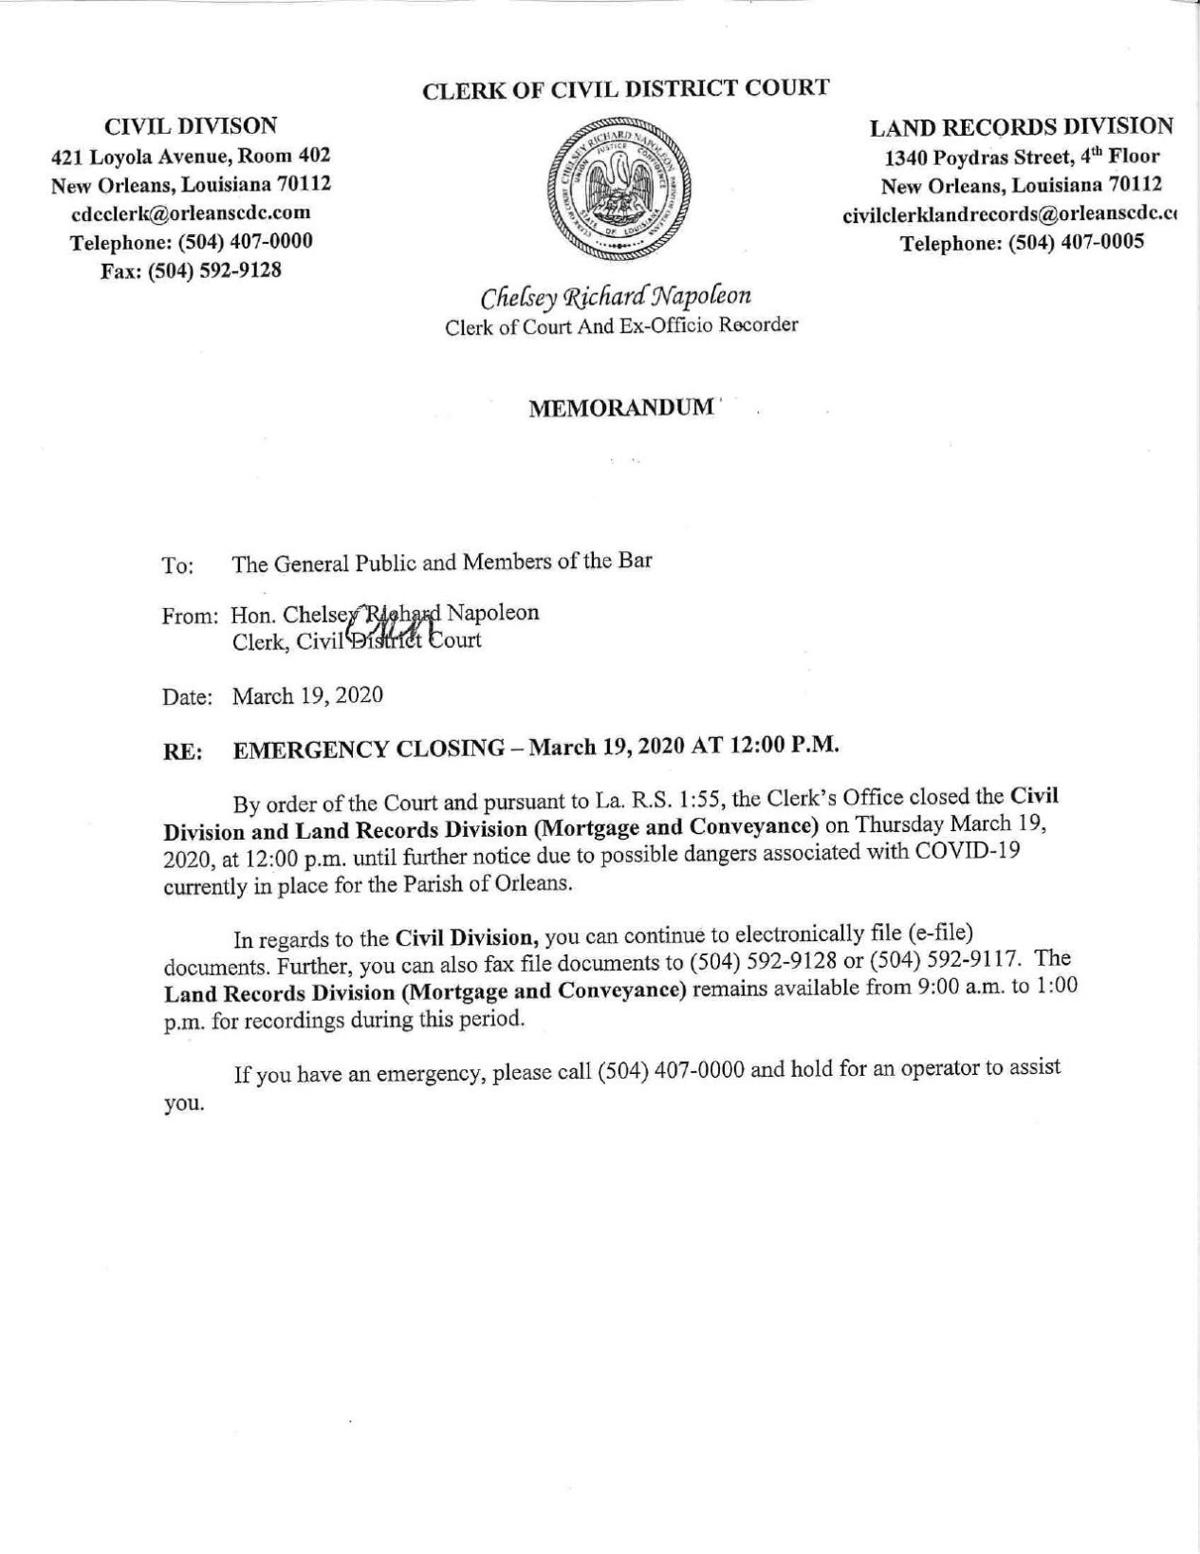 Civil Court closure memo